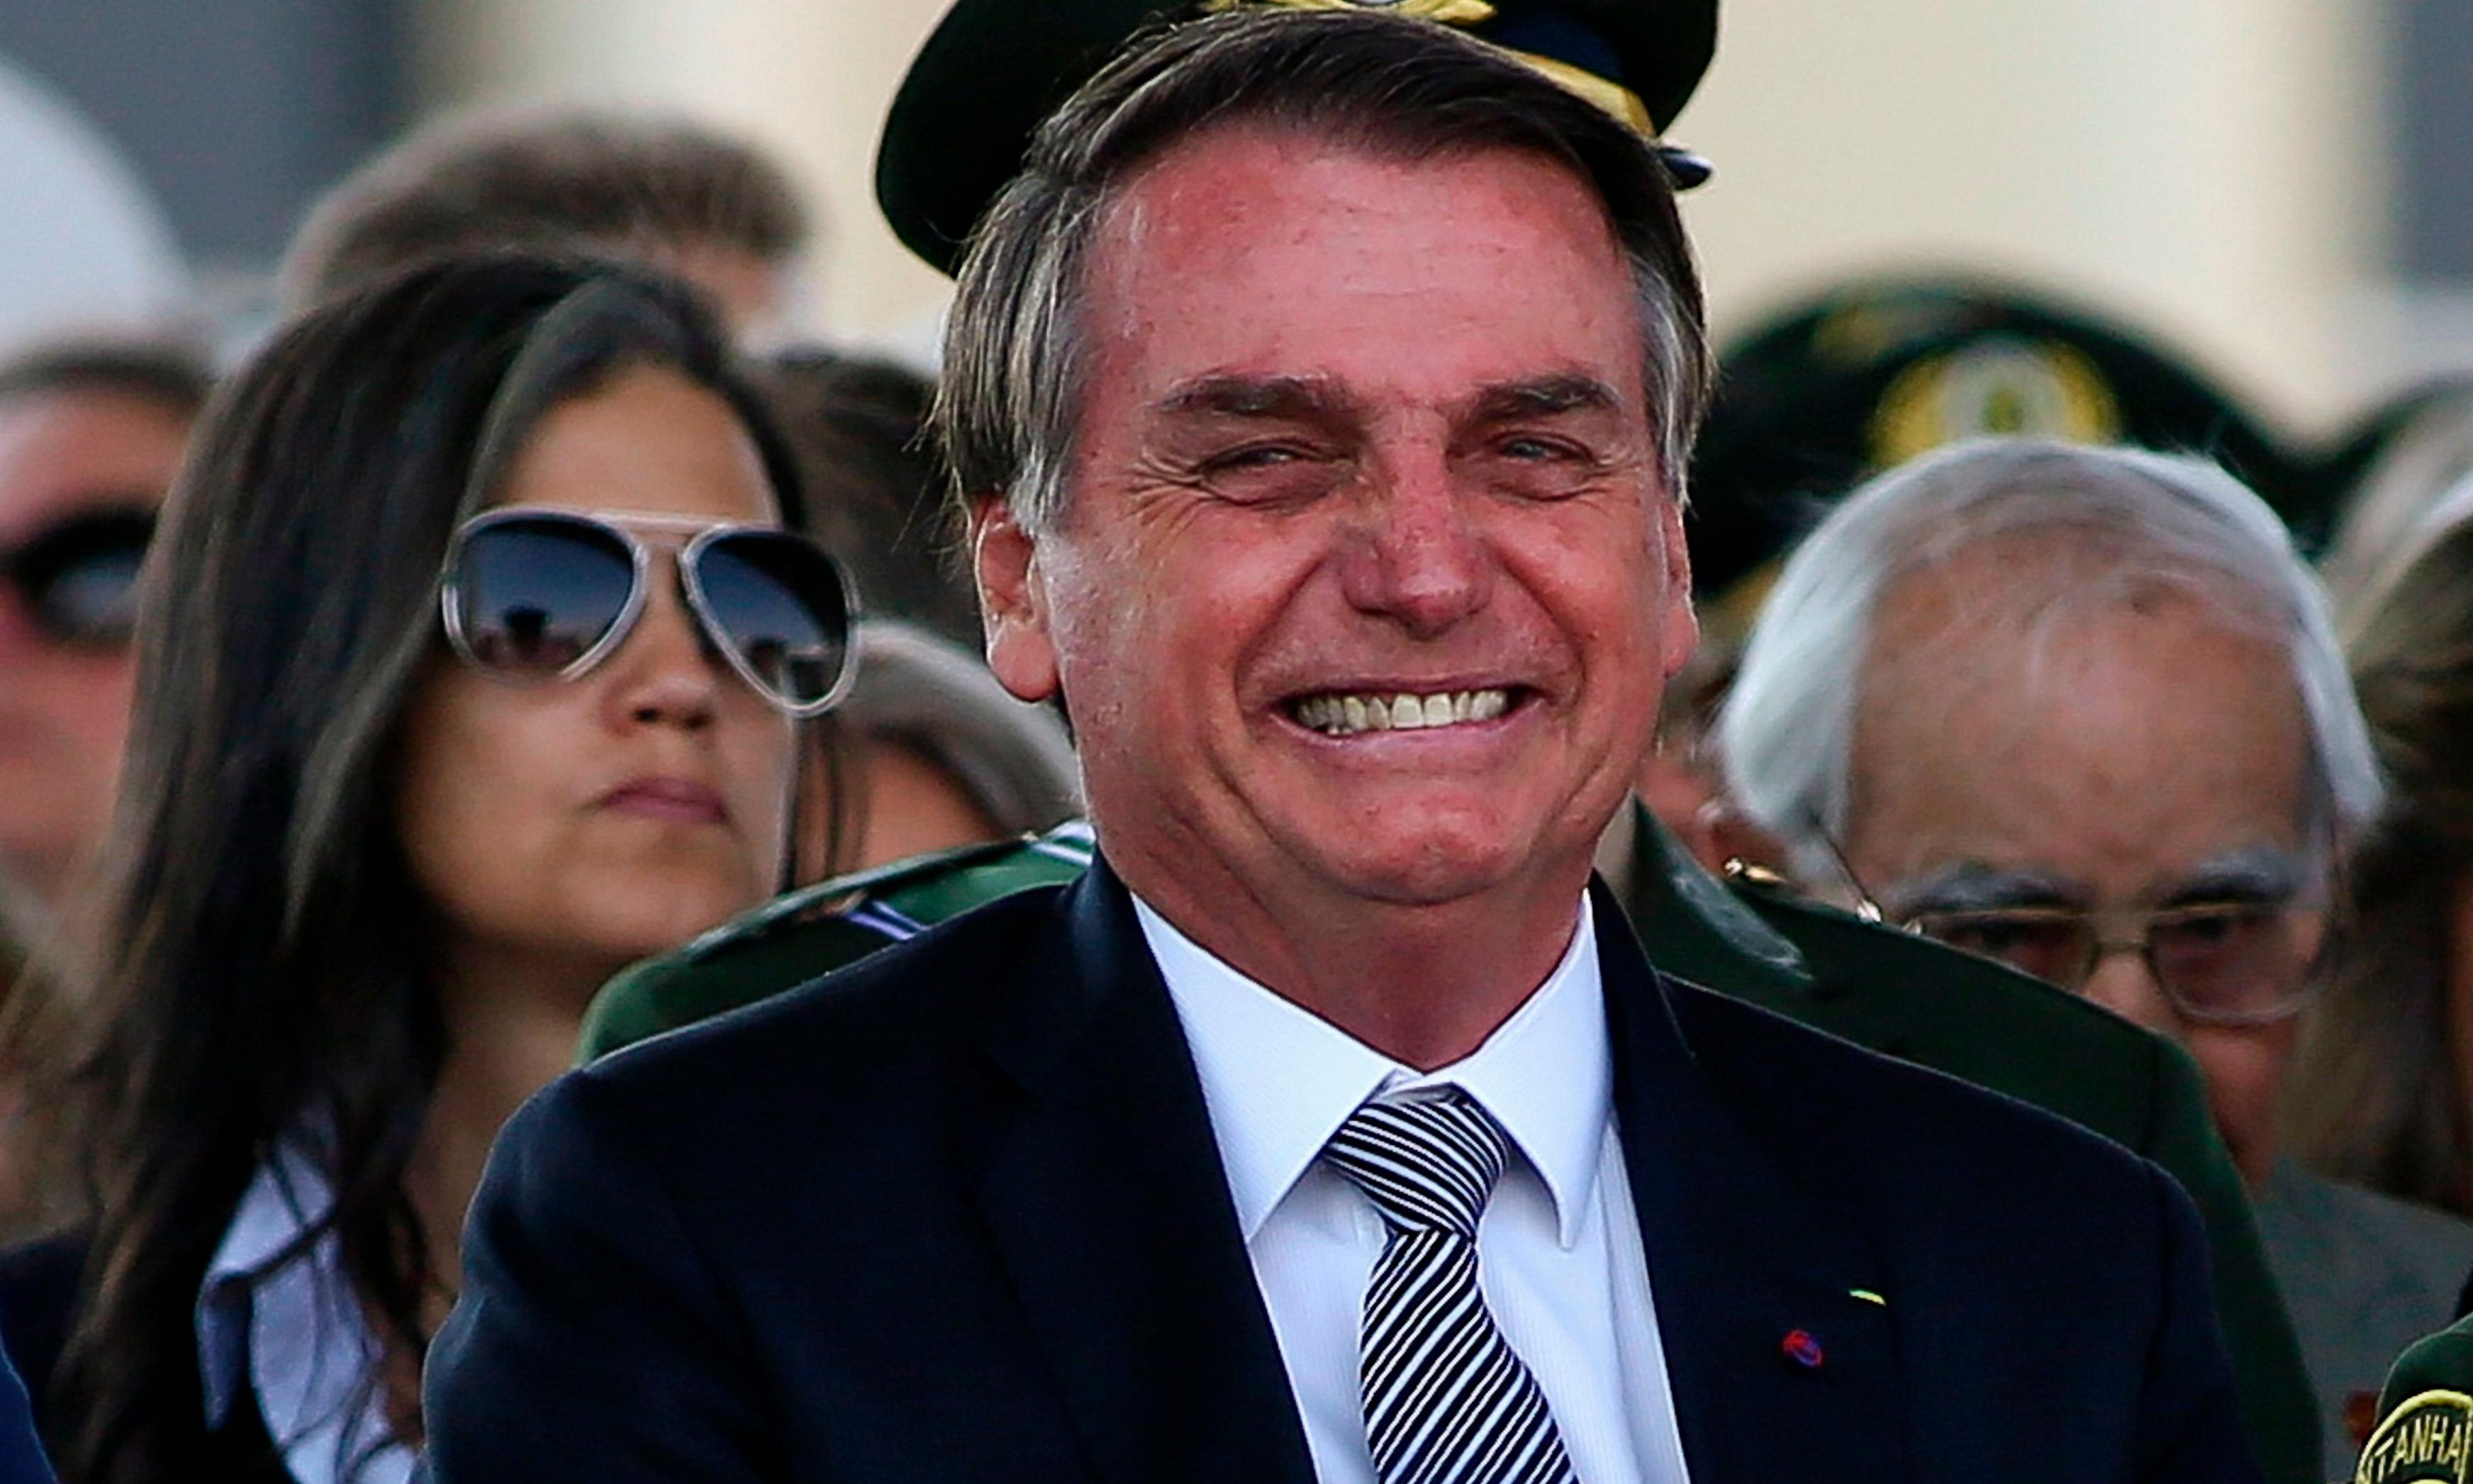 Bolsonaro enjoys comedy club outing as Amazon fires rage on